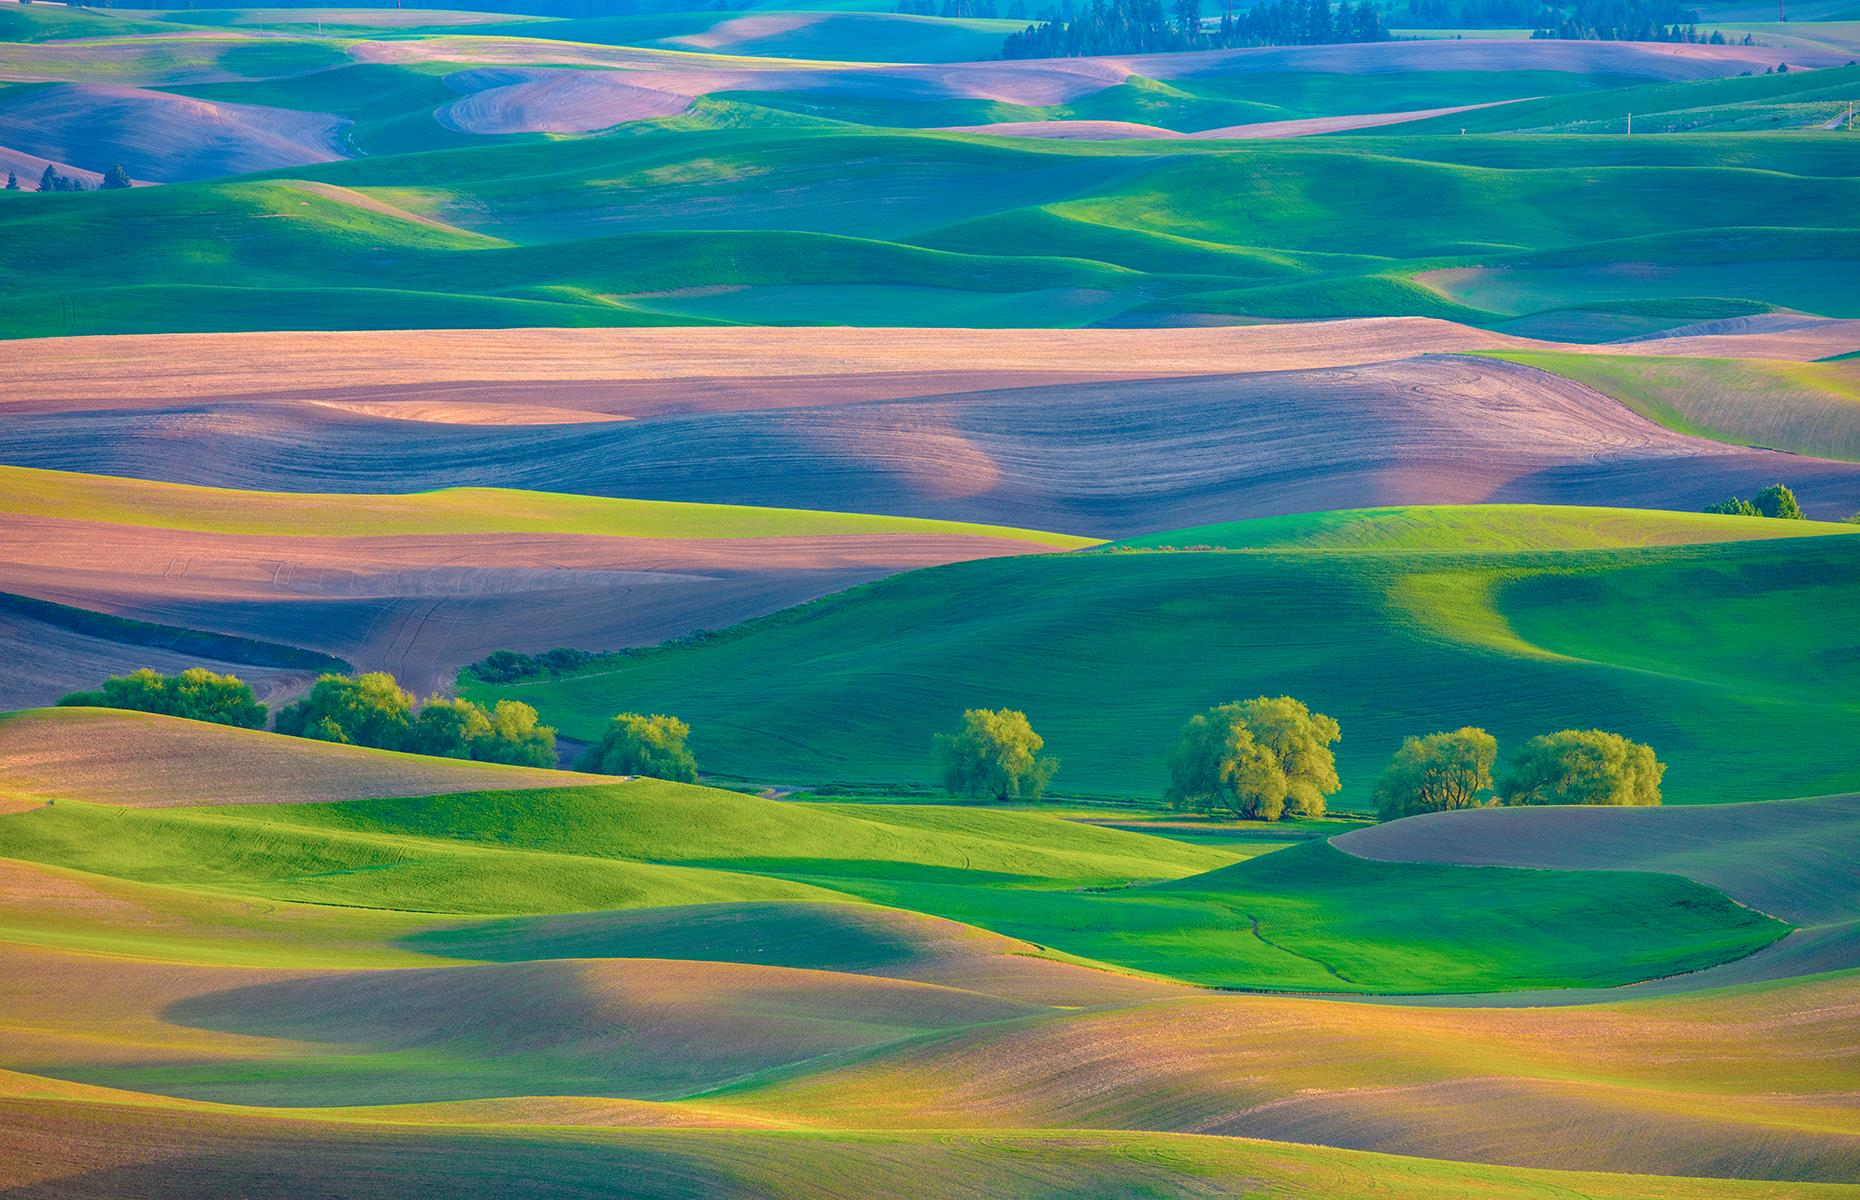 Slide 8 of 43: Despite being one of America's most attractive regions, the Palouse often slips under the radar. This major agricultural area, which also encompasses parts of Idaho, is known for picture-perfect pastoral fields that shimmer in shades of purple and green. These idyllic hills were formed over tens of thousands of years, from wind-blown dust and silt from dryer climes.